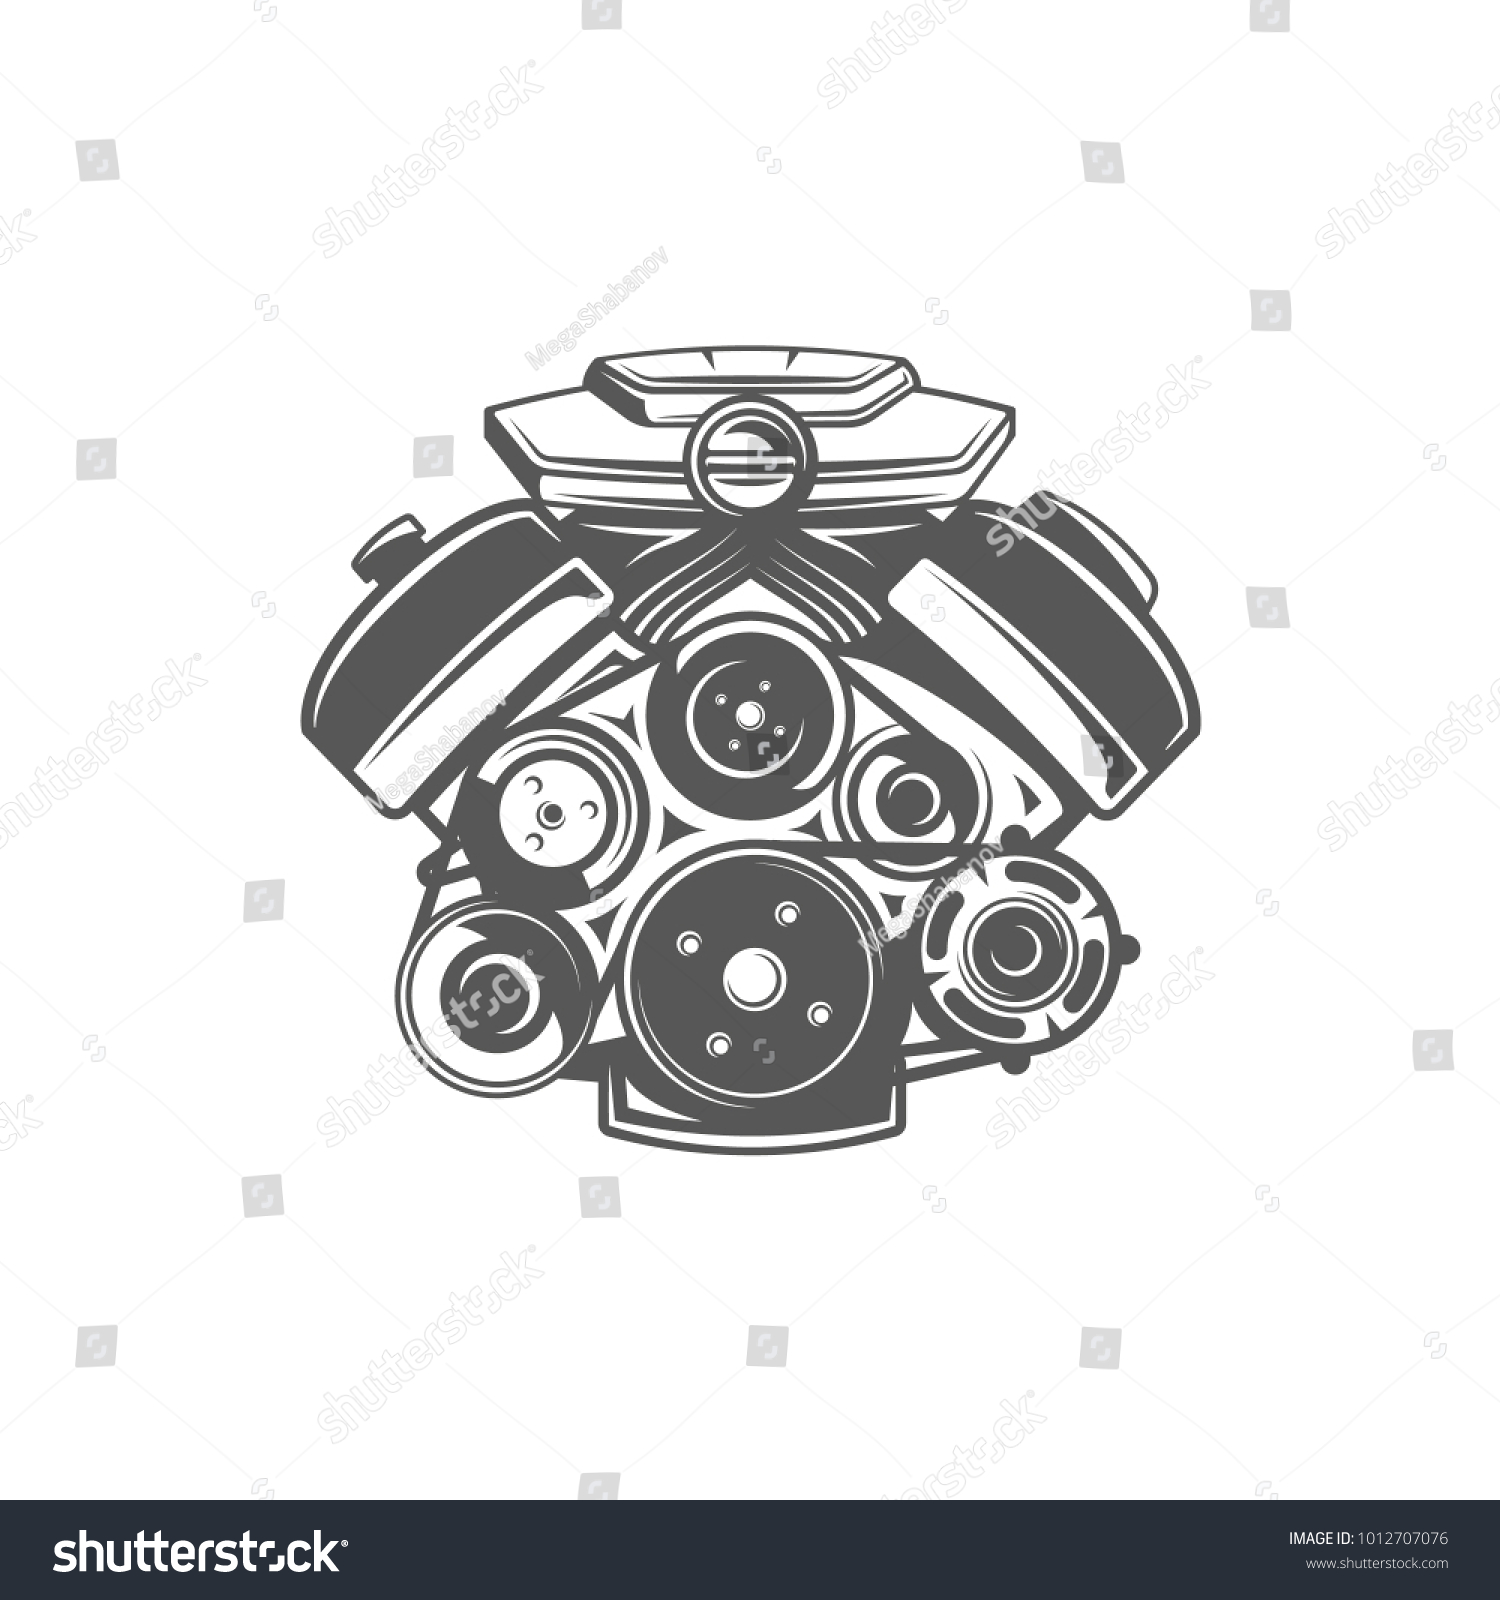 Element car service engine isolated on stock vector 1012707076 element of the car service engine isolated on white background symbol for car service biocorpaavc Choice Image